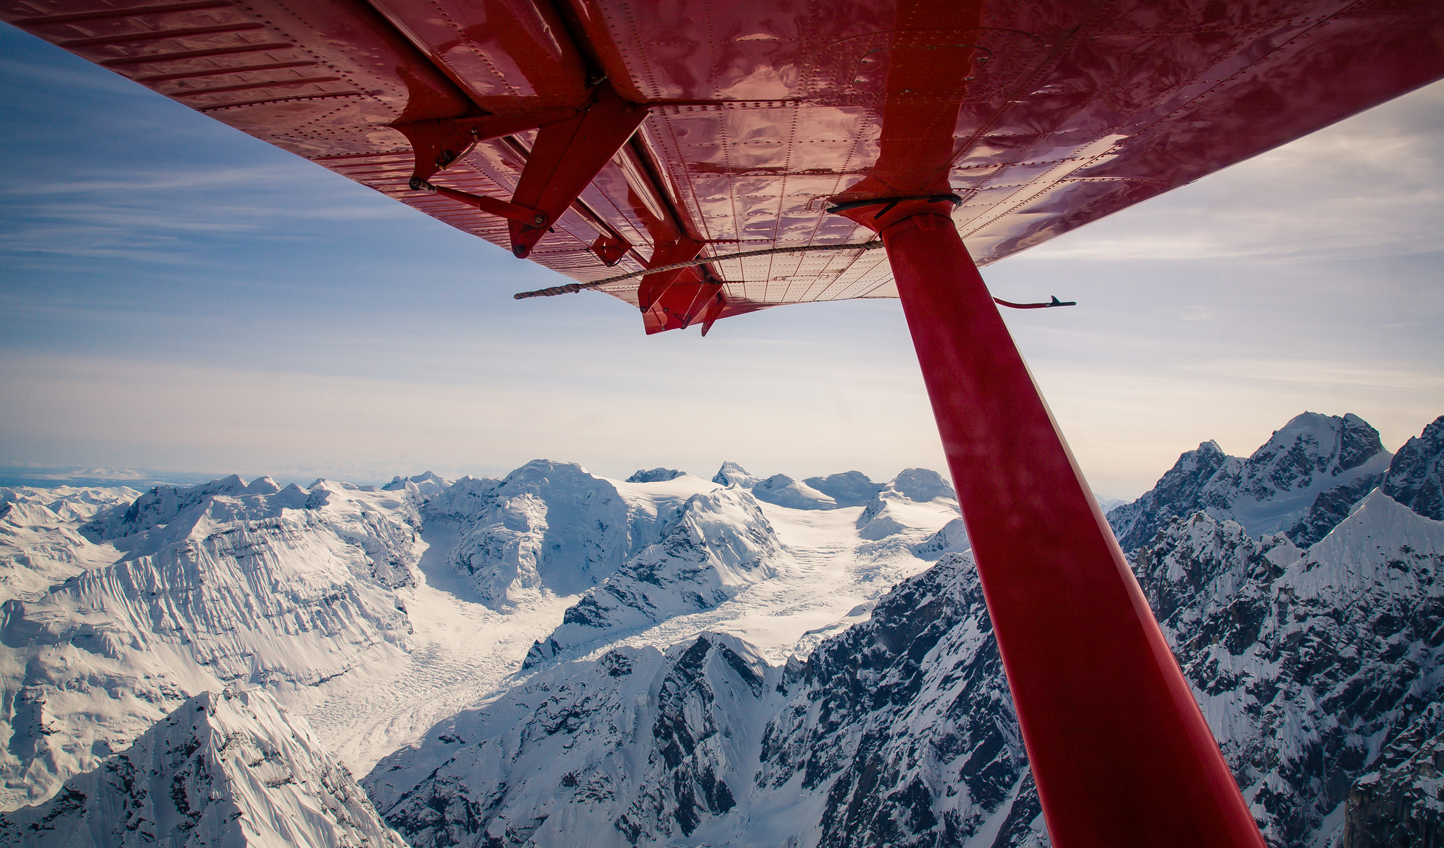 See Denali National Park from the sky